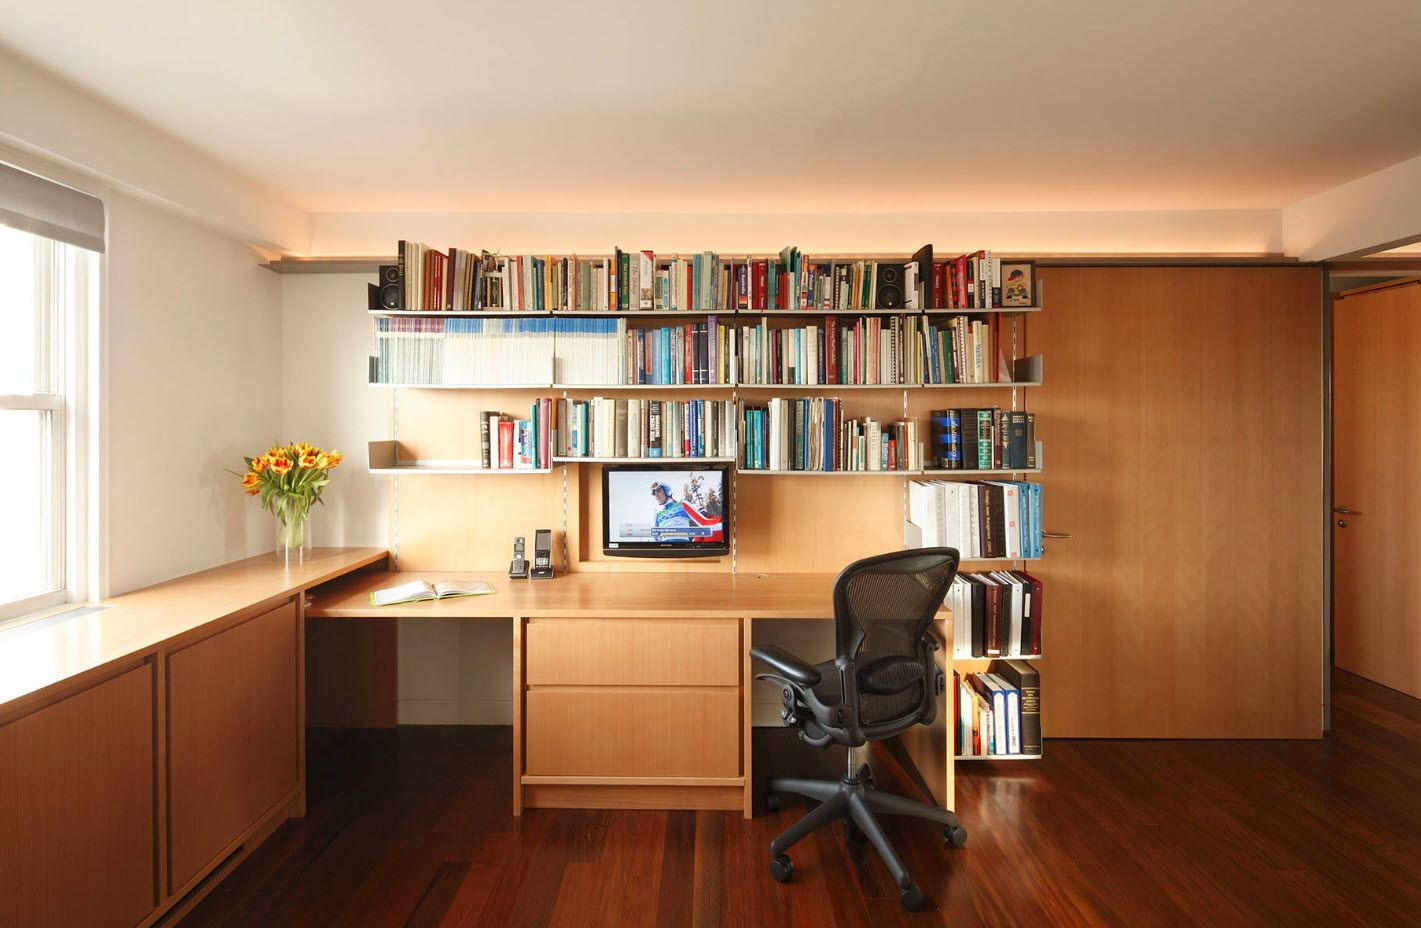 Modern Cottage Interior Design Tips. Trends and Features 2017. Classic light wooden furniture set for the home office